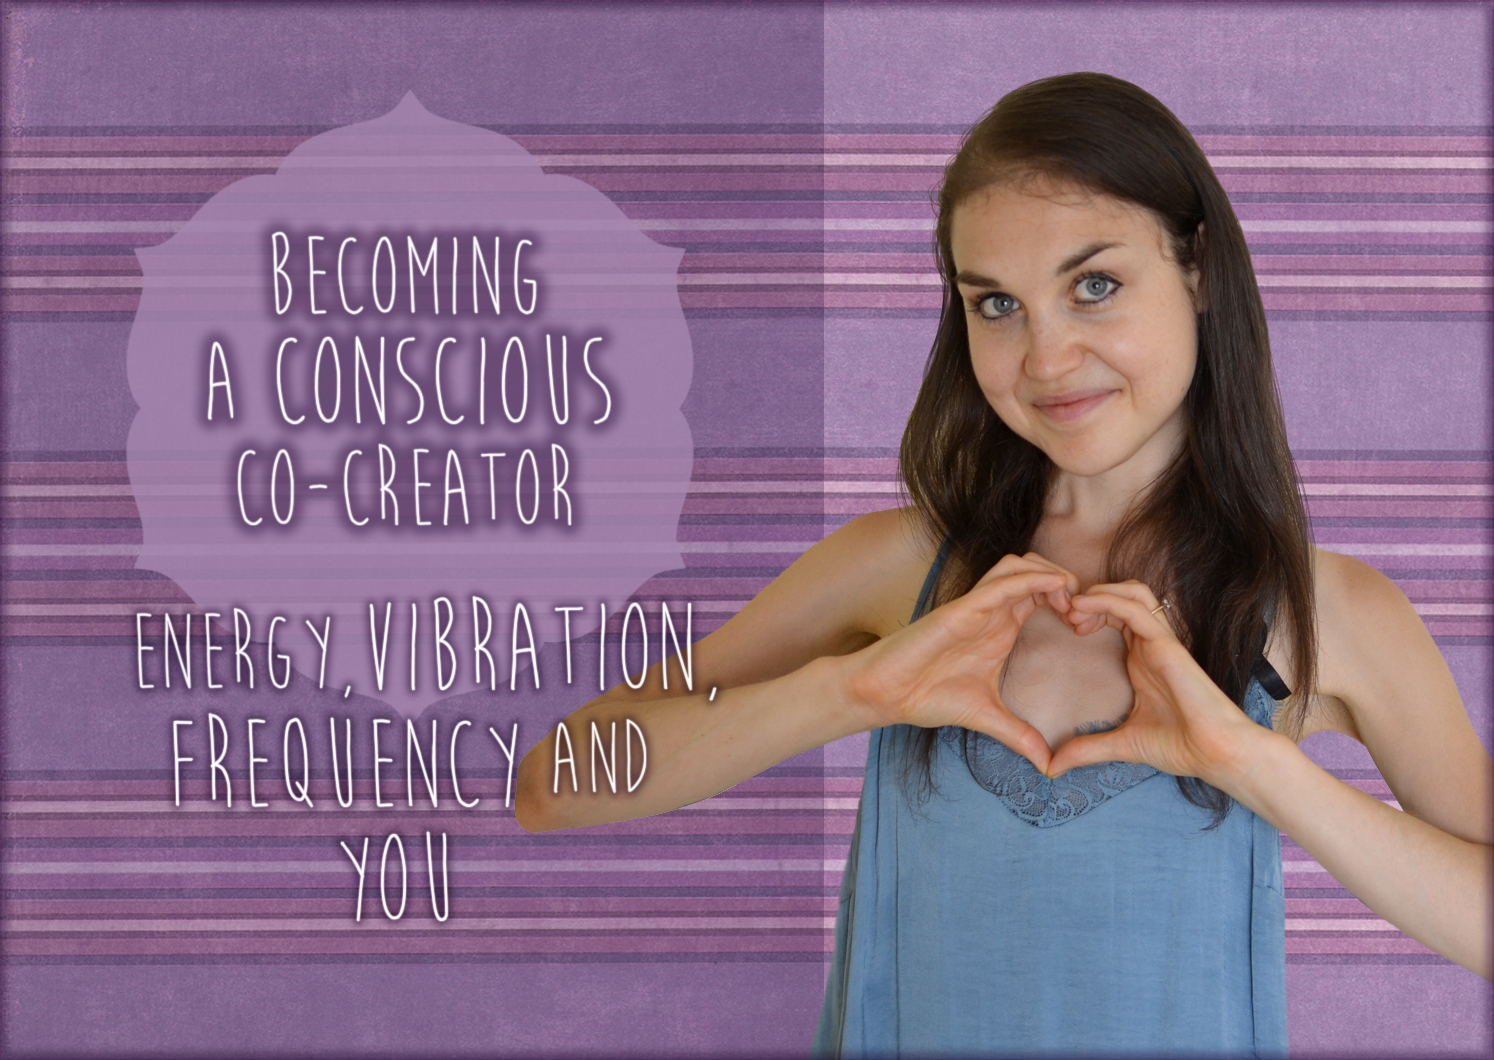 Becoming A Conscious Co-Creator – Energy, Vibration, Frequency And YOU